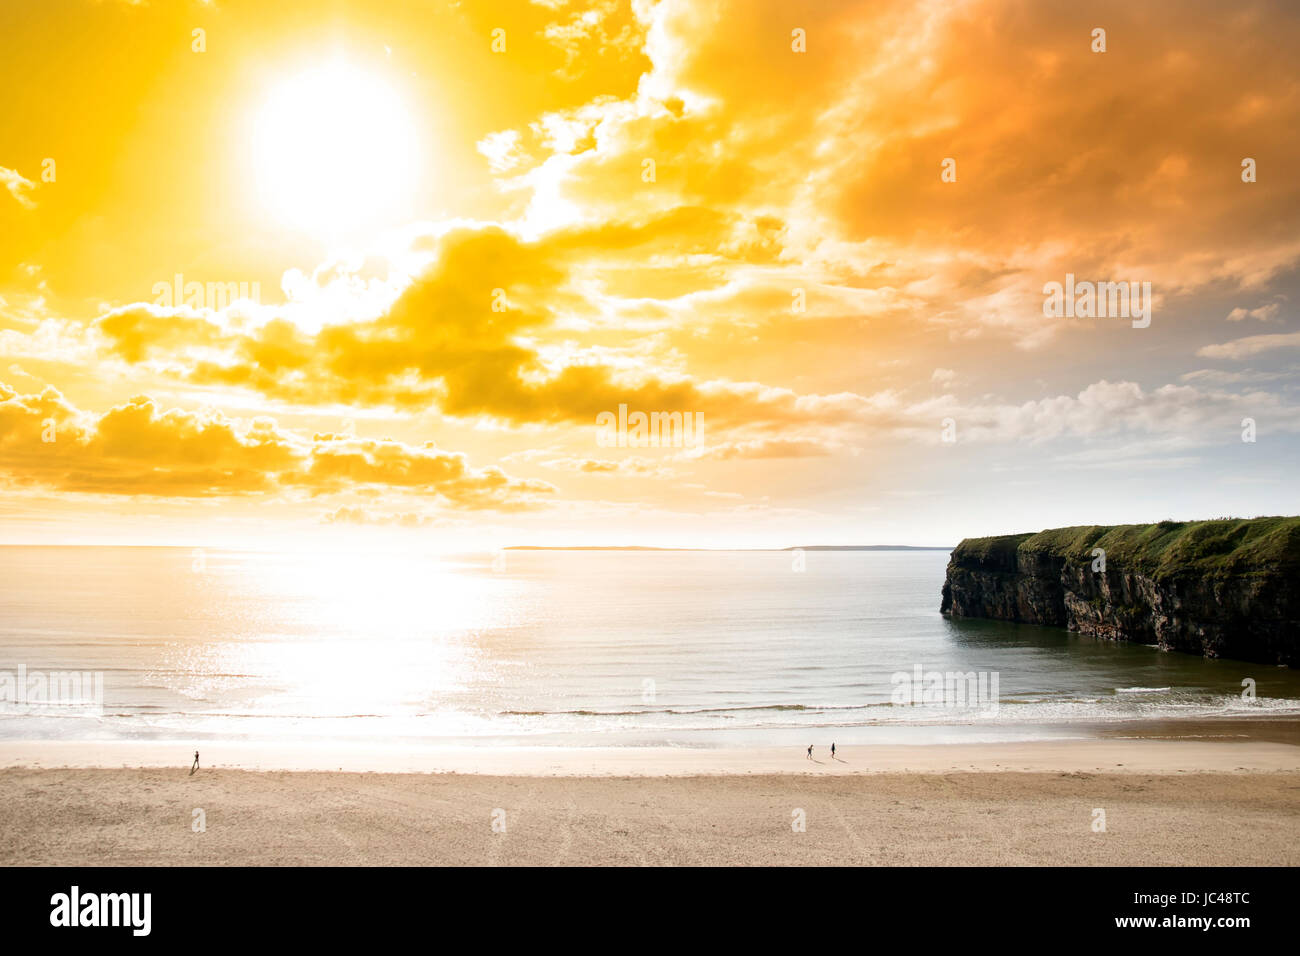 tourists walking the Ballybunion beach near cliffs in county Kerry Ireland on a beautiful summers day - Stock Image